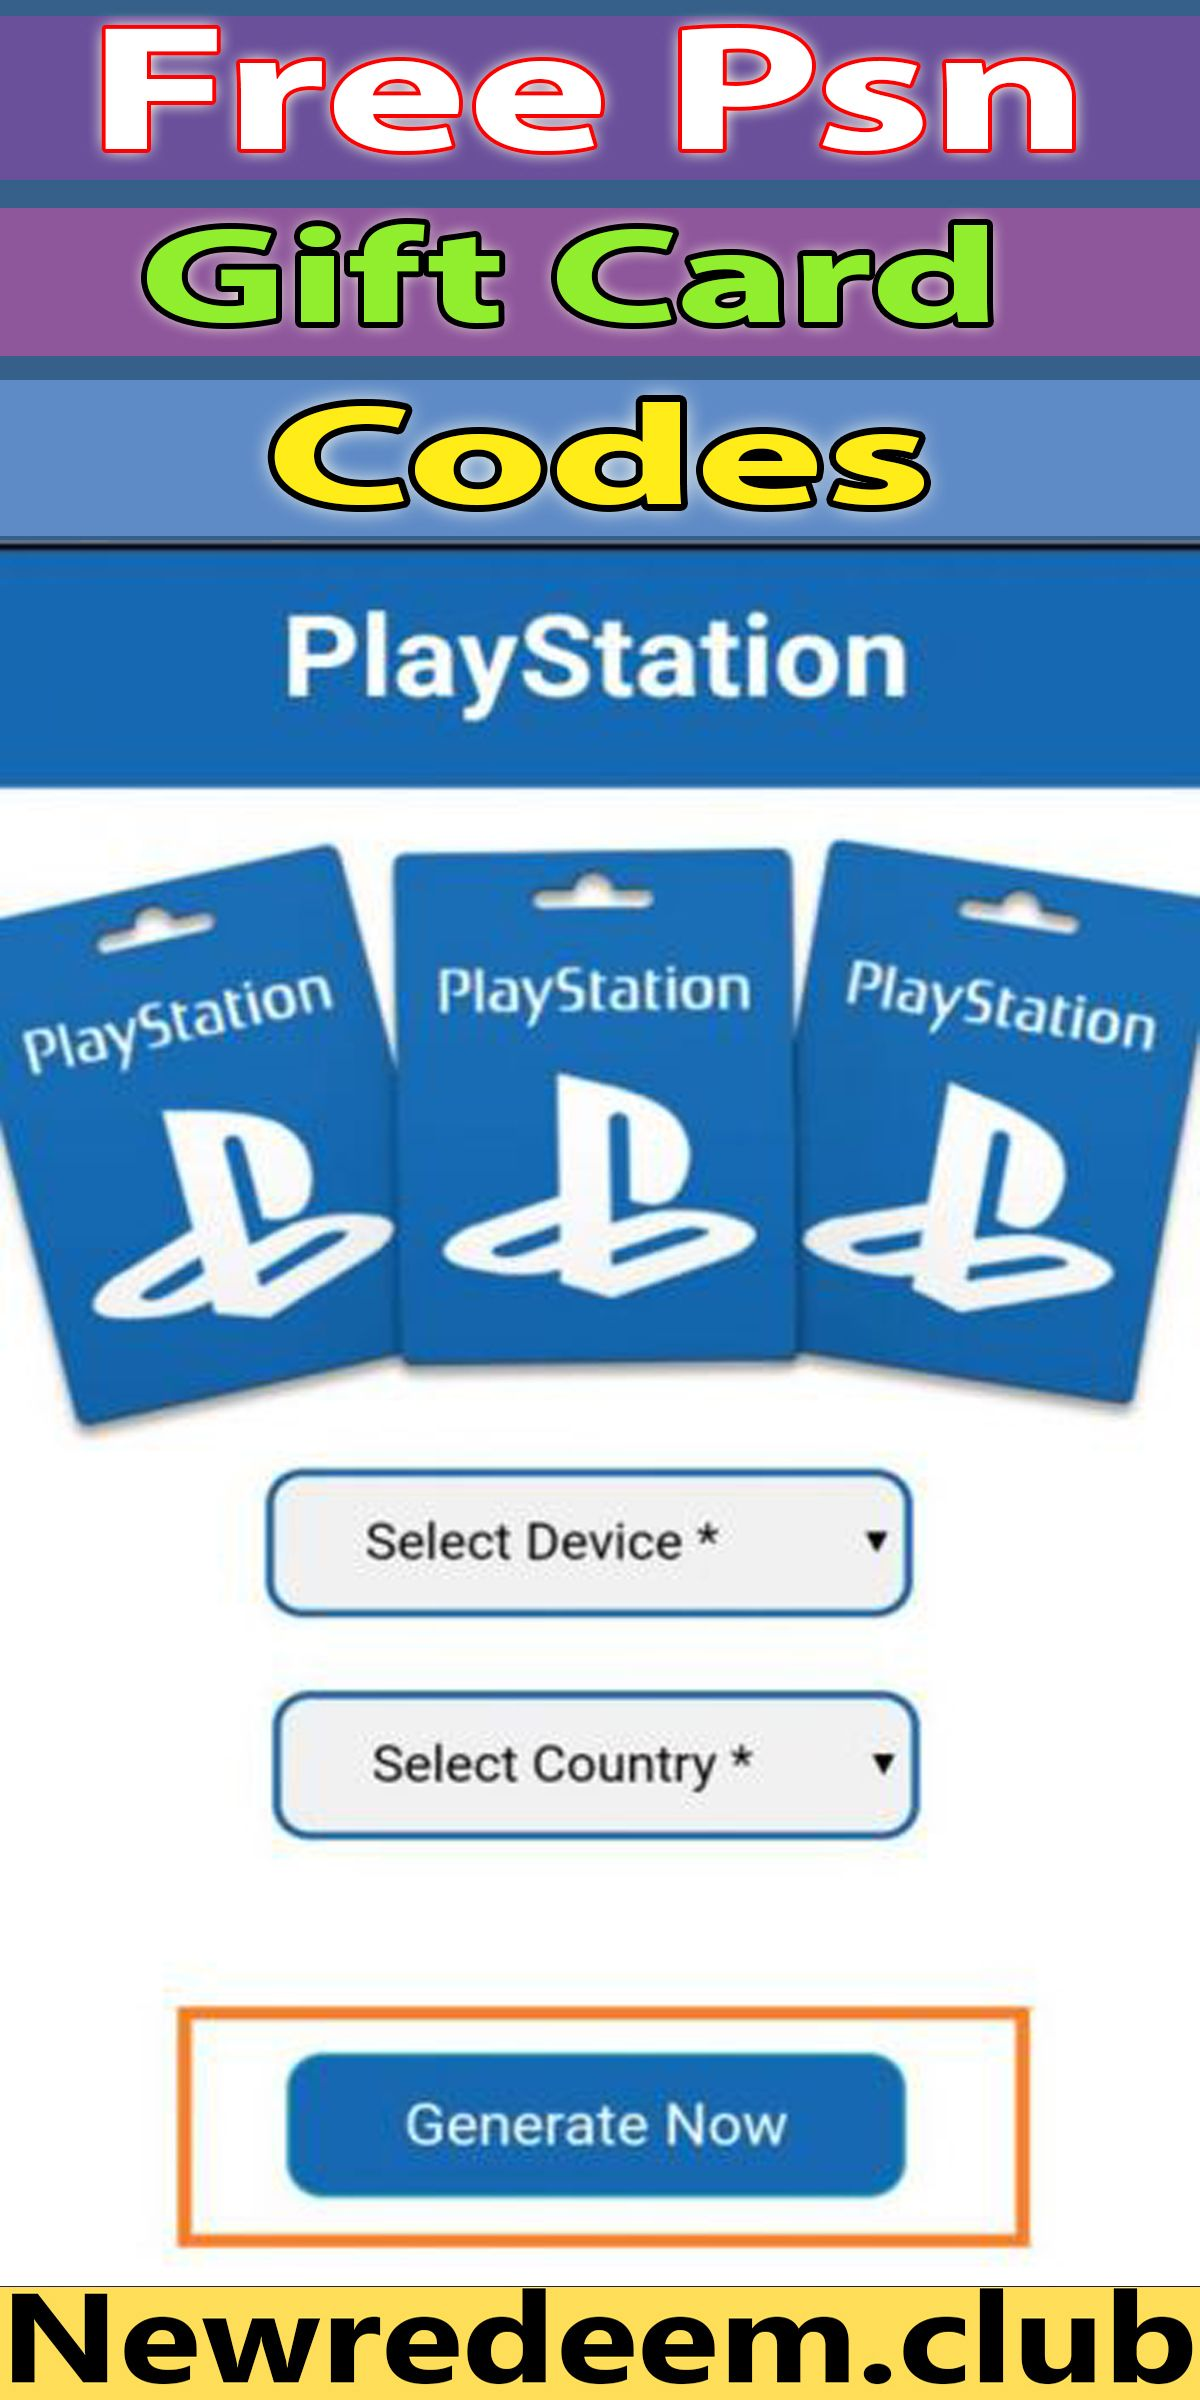 Free Psn Codes Psn Code Generator Online 2020 100 Working Free Gift Cards Free Gifts Ps4 Gift Card